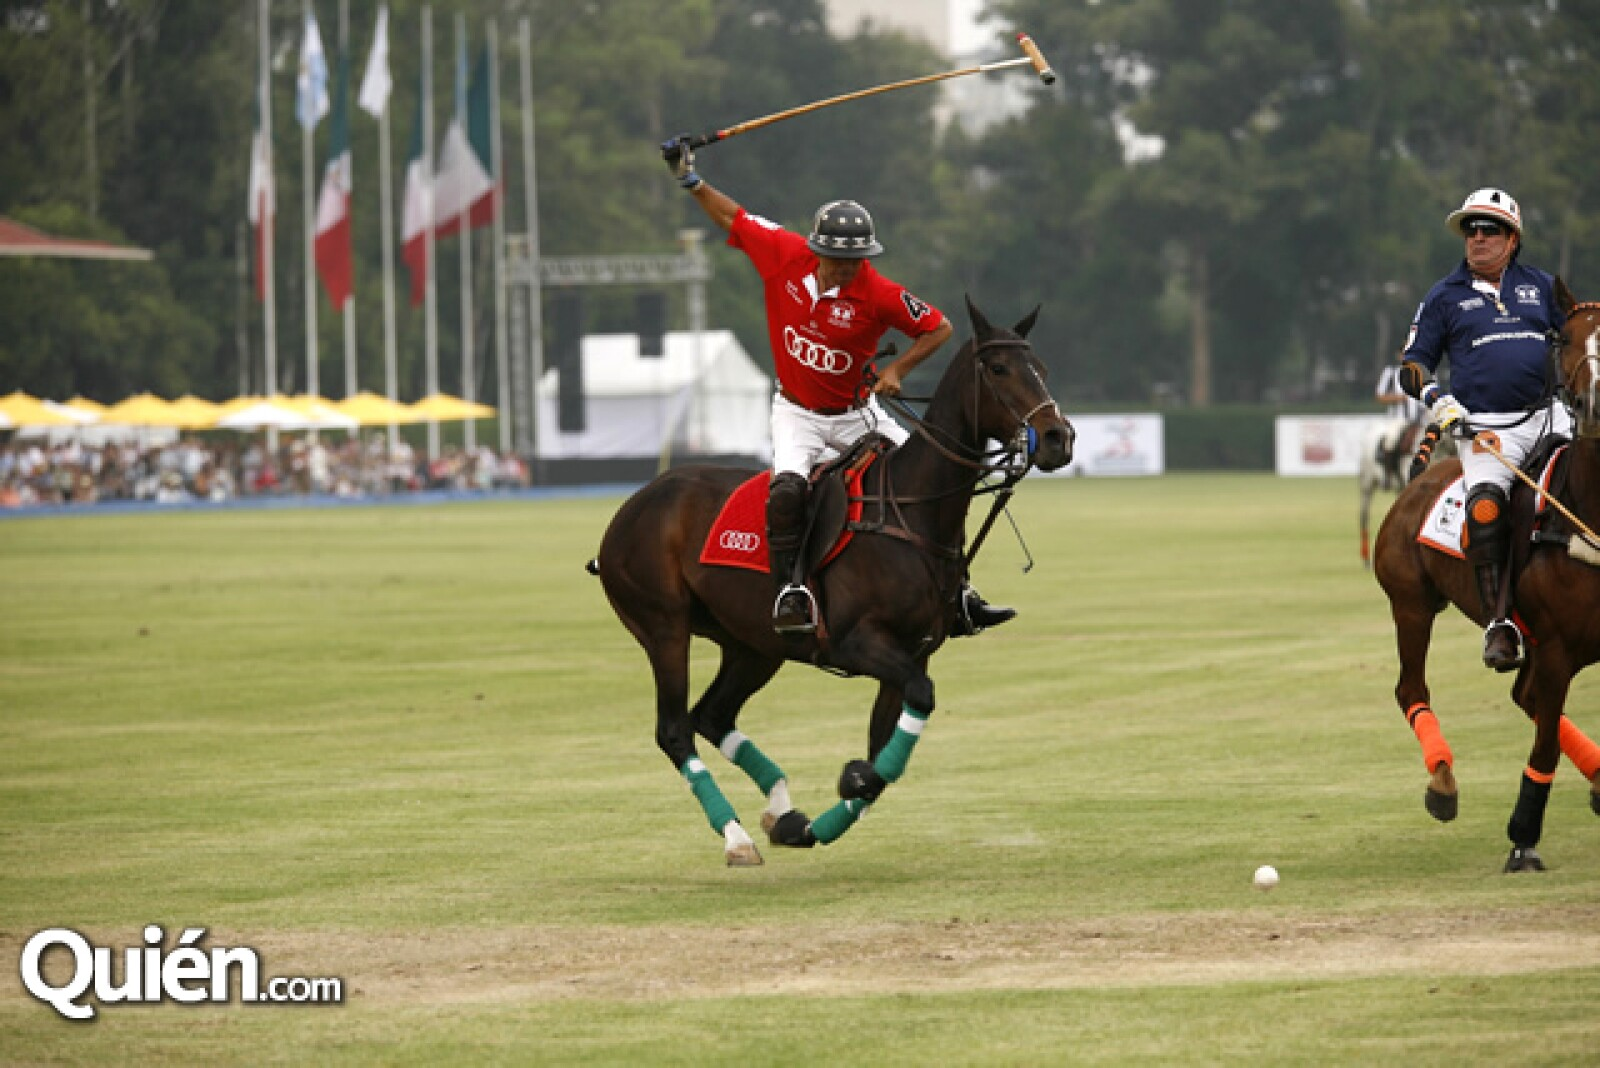 Audi Polo Cup